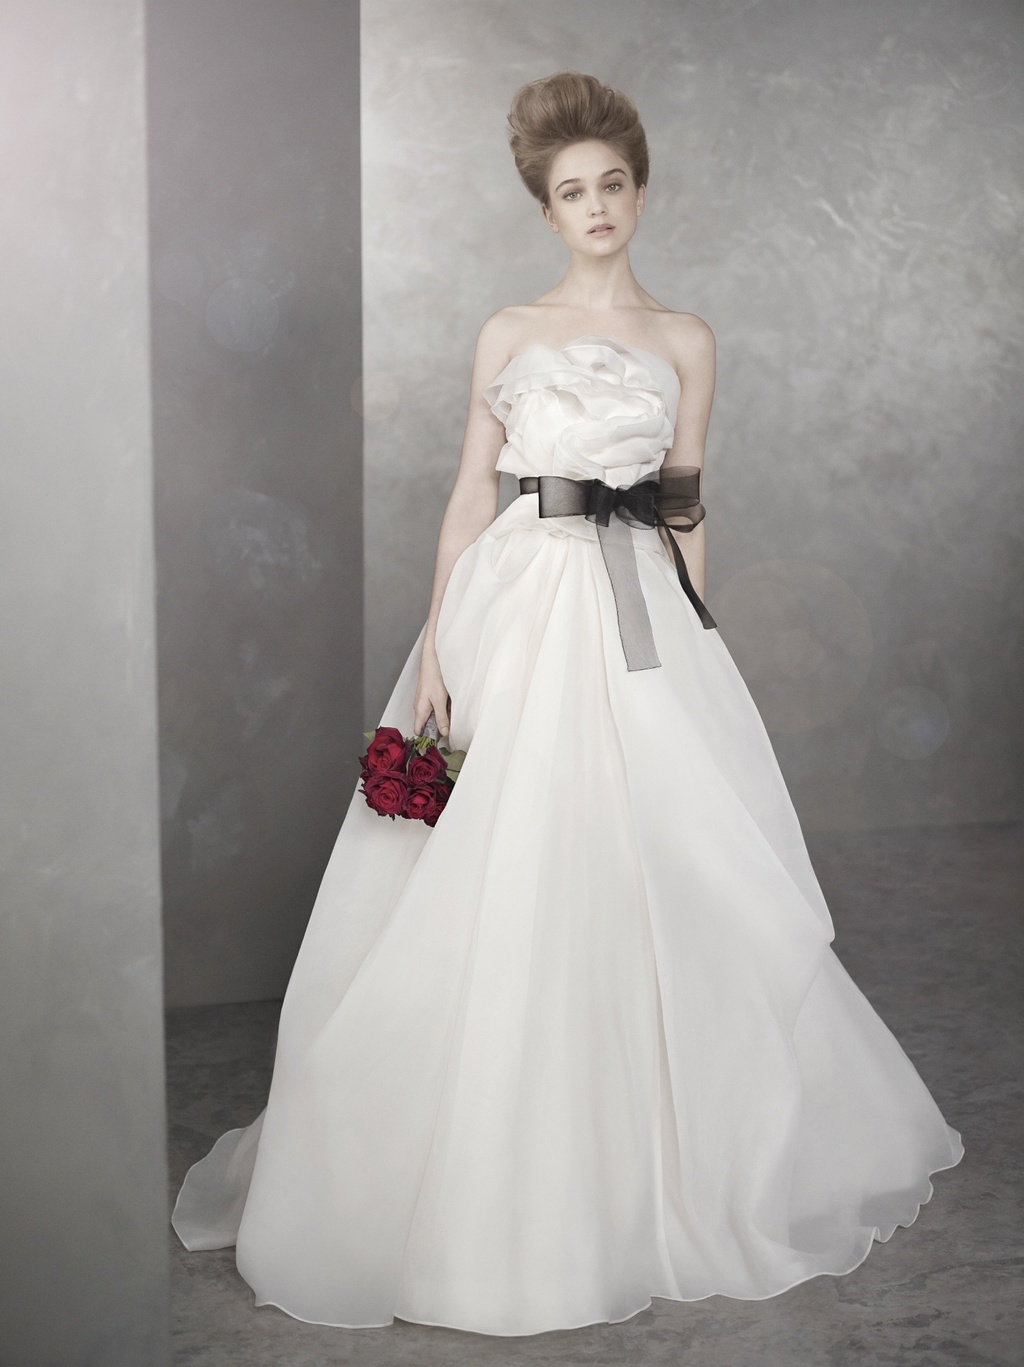 White By Vera Wedding Dress With Black Sash